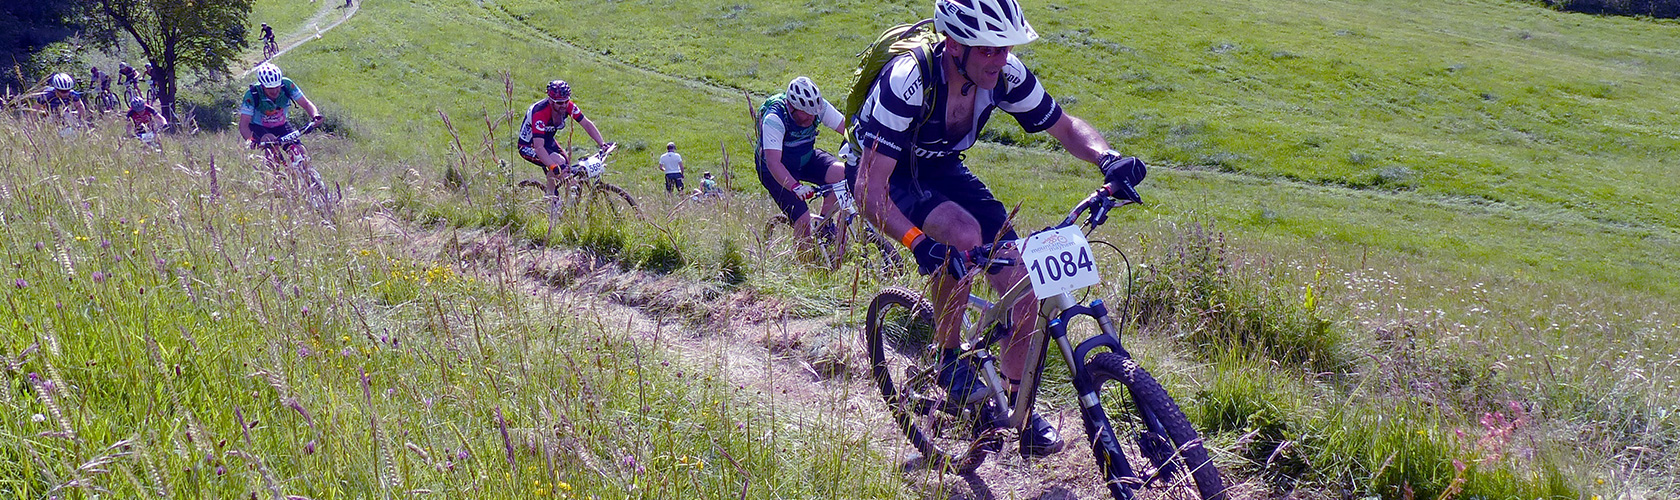 Group of cyclists racing off road